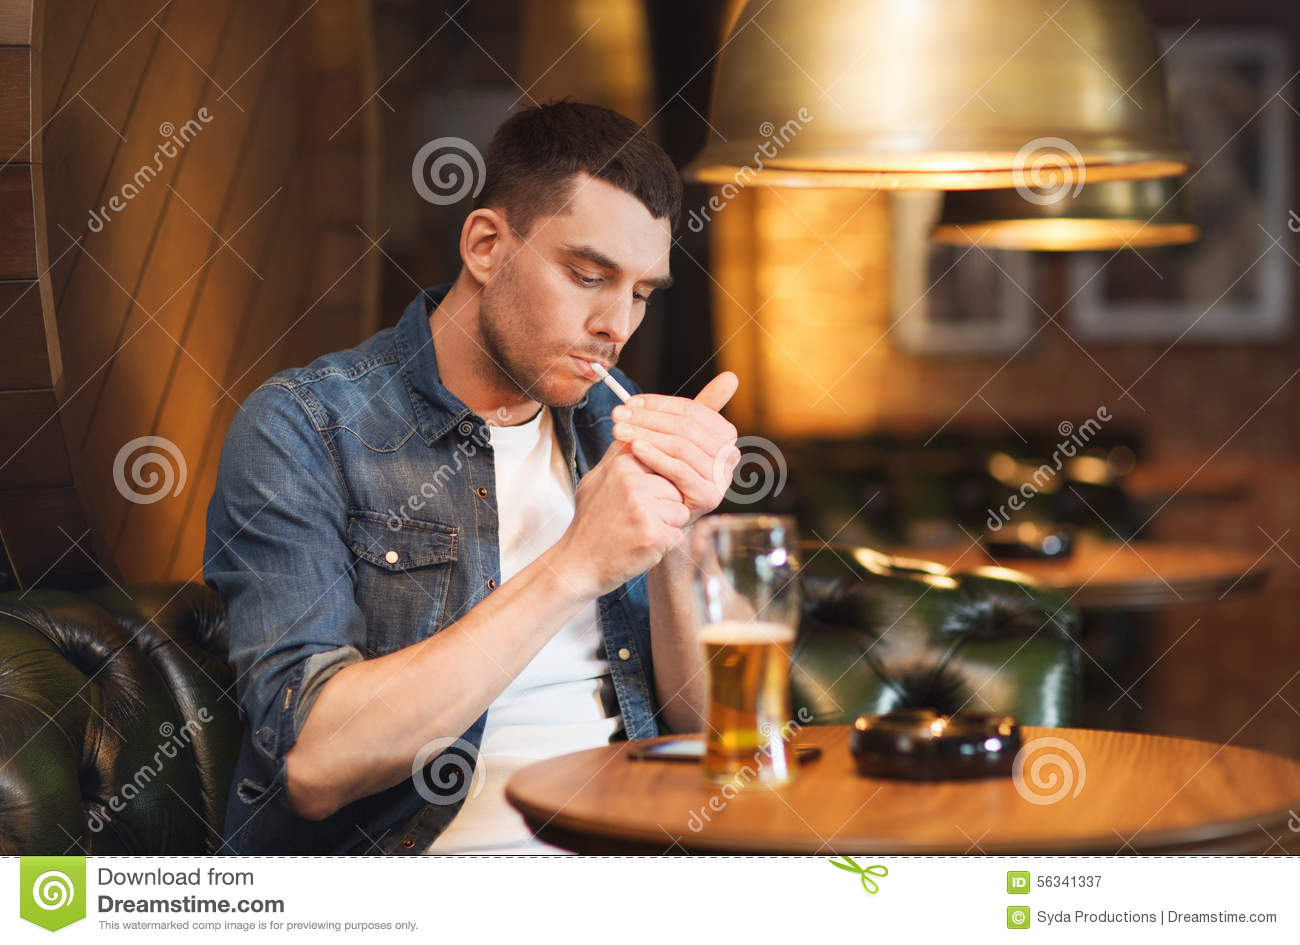 People drinking beer at bar